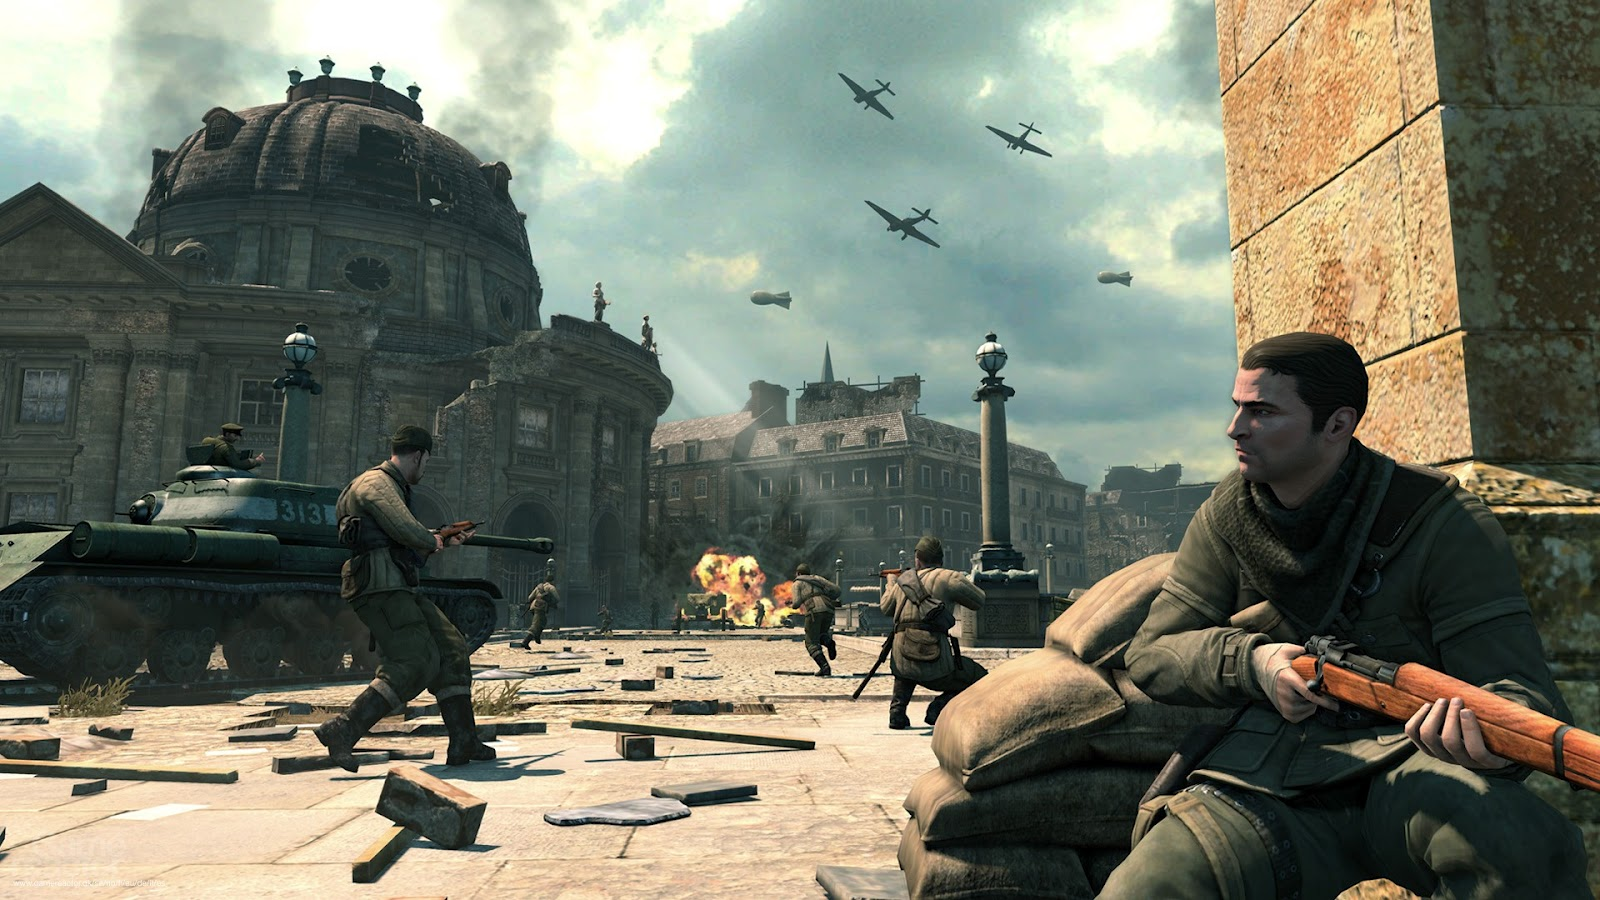 SniperEliteV2wallpapers3 Sniper Elite V2 Full HD Wallpapers 1080p 1600x900